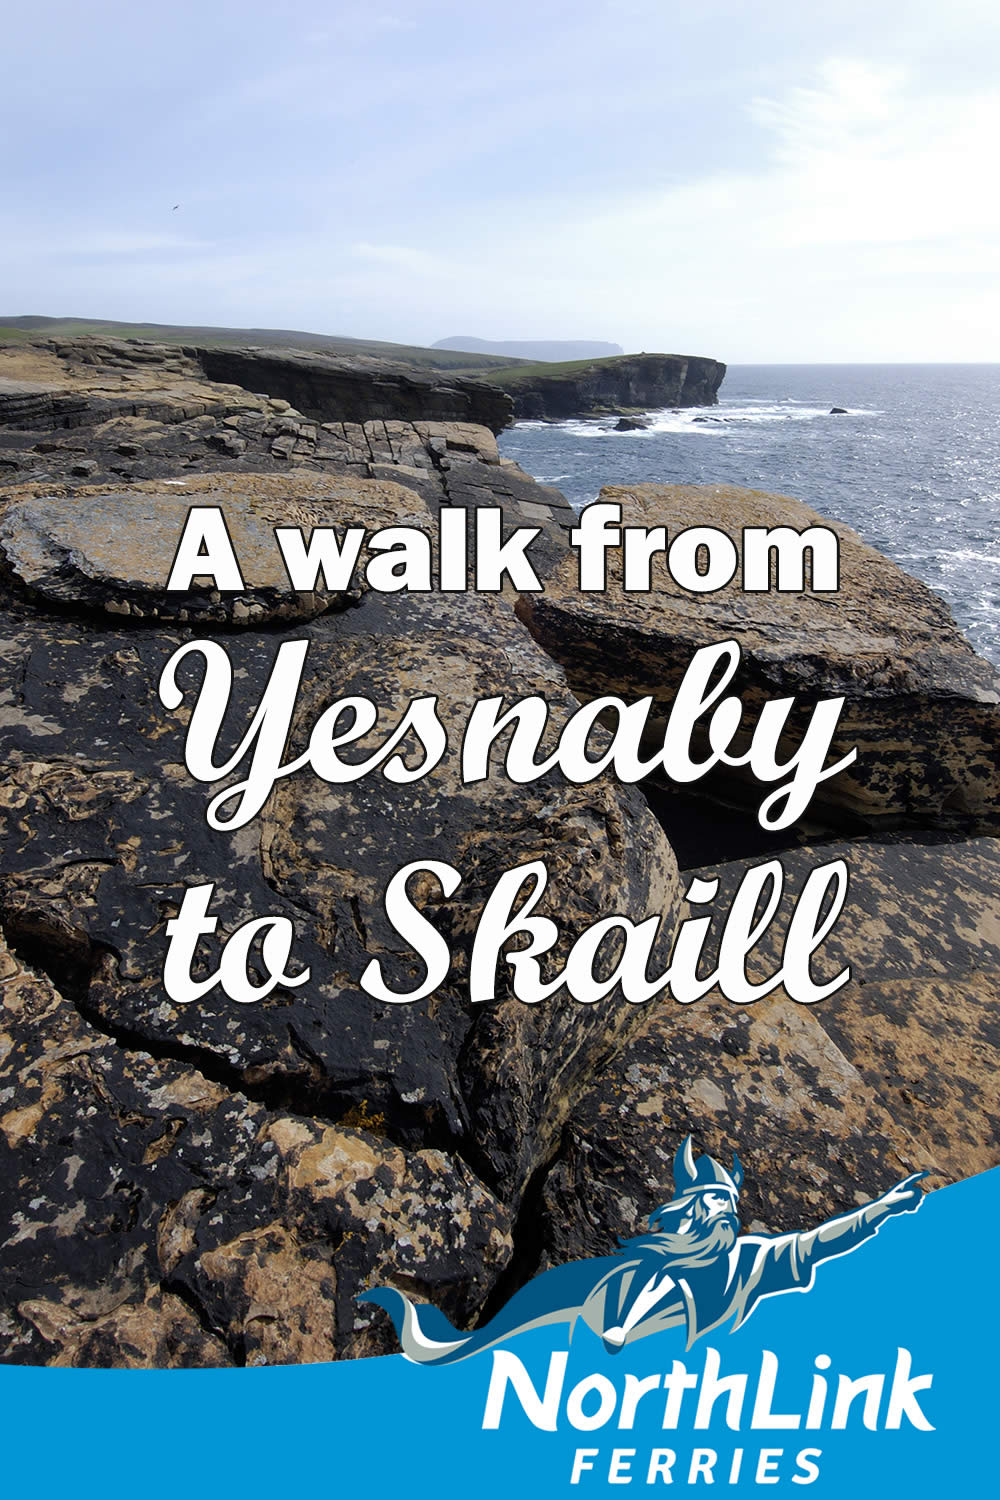 A walk from Yesnaby to Skaill